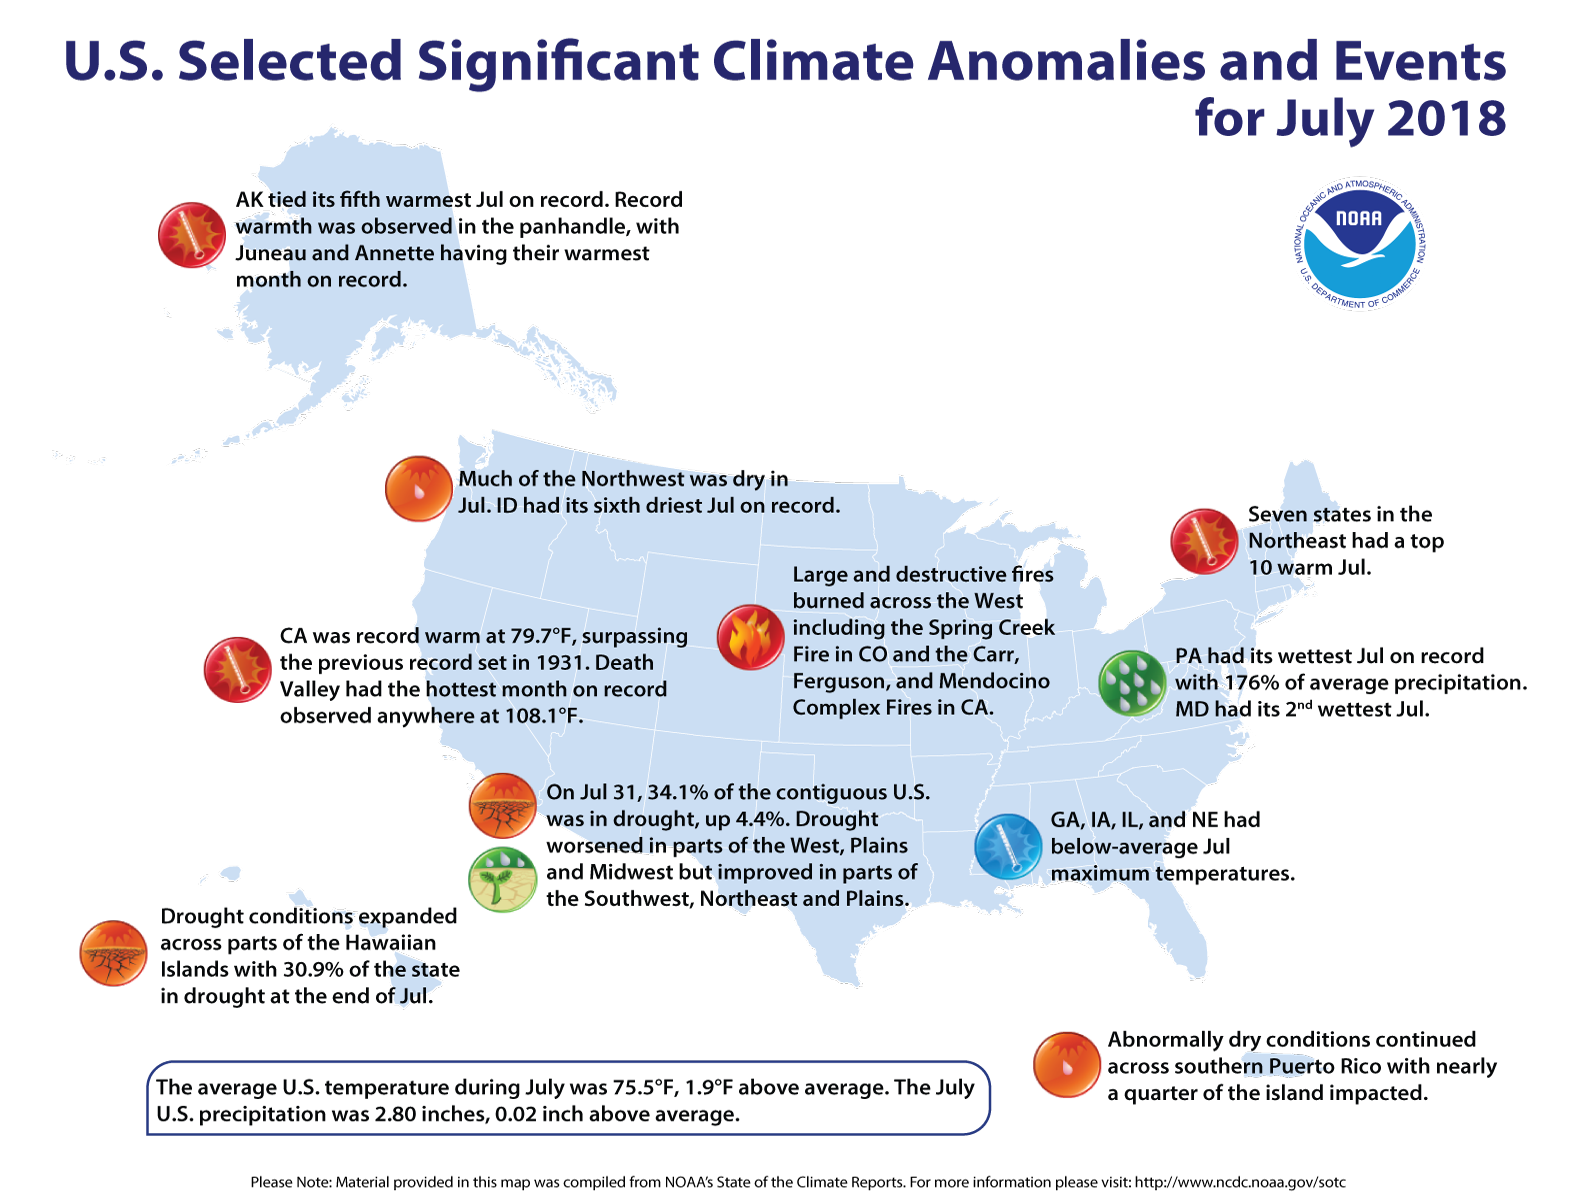 July Extreme Weather/Climate Events